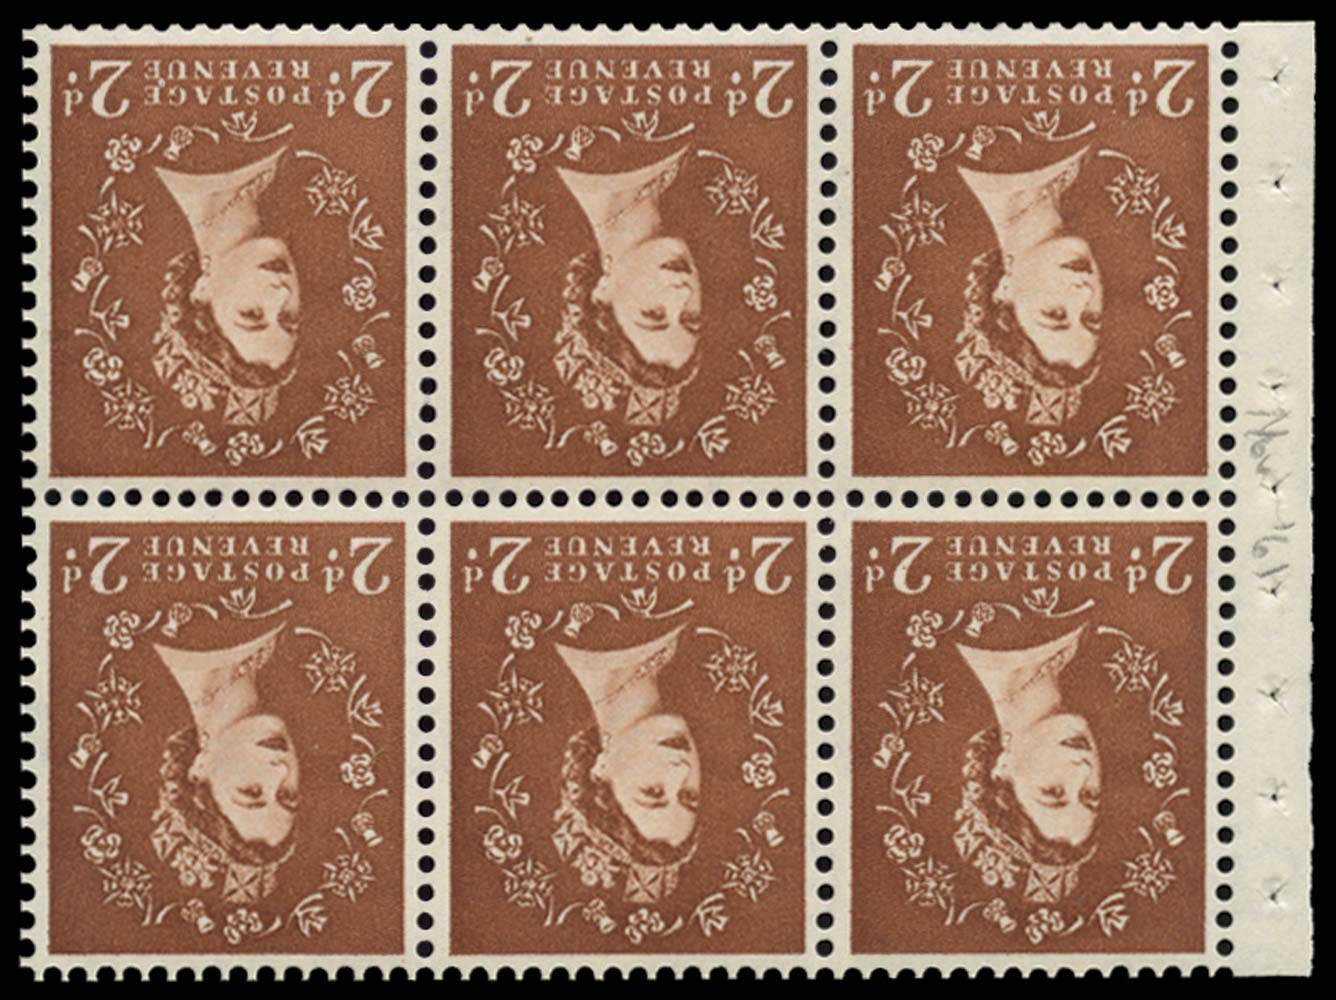 GB 1961  SG573lwi Booklet pane of six, U/M